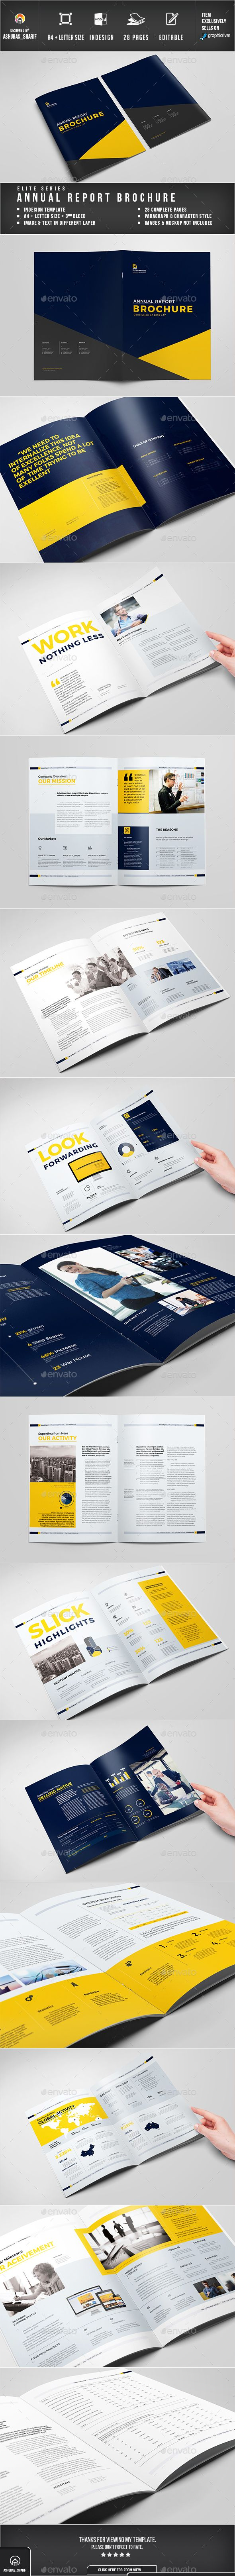 54 best indesign template images on pinterest